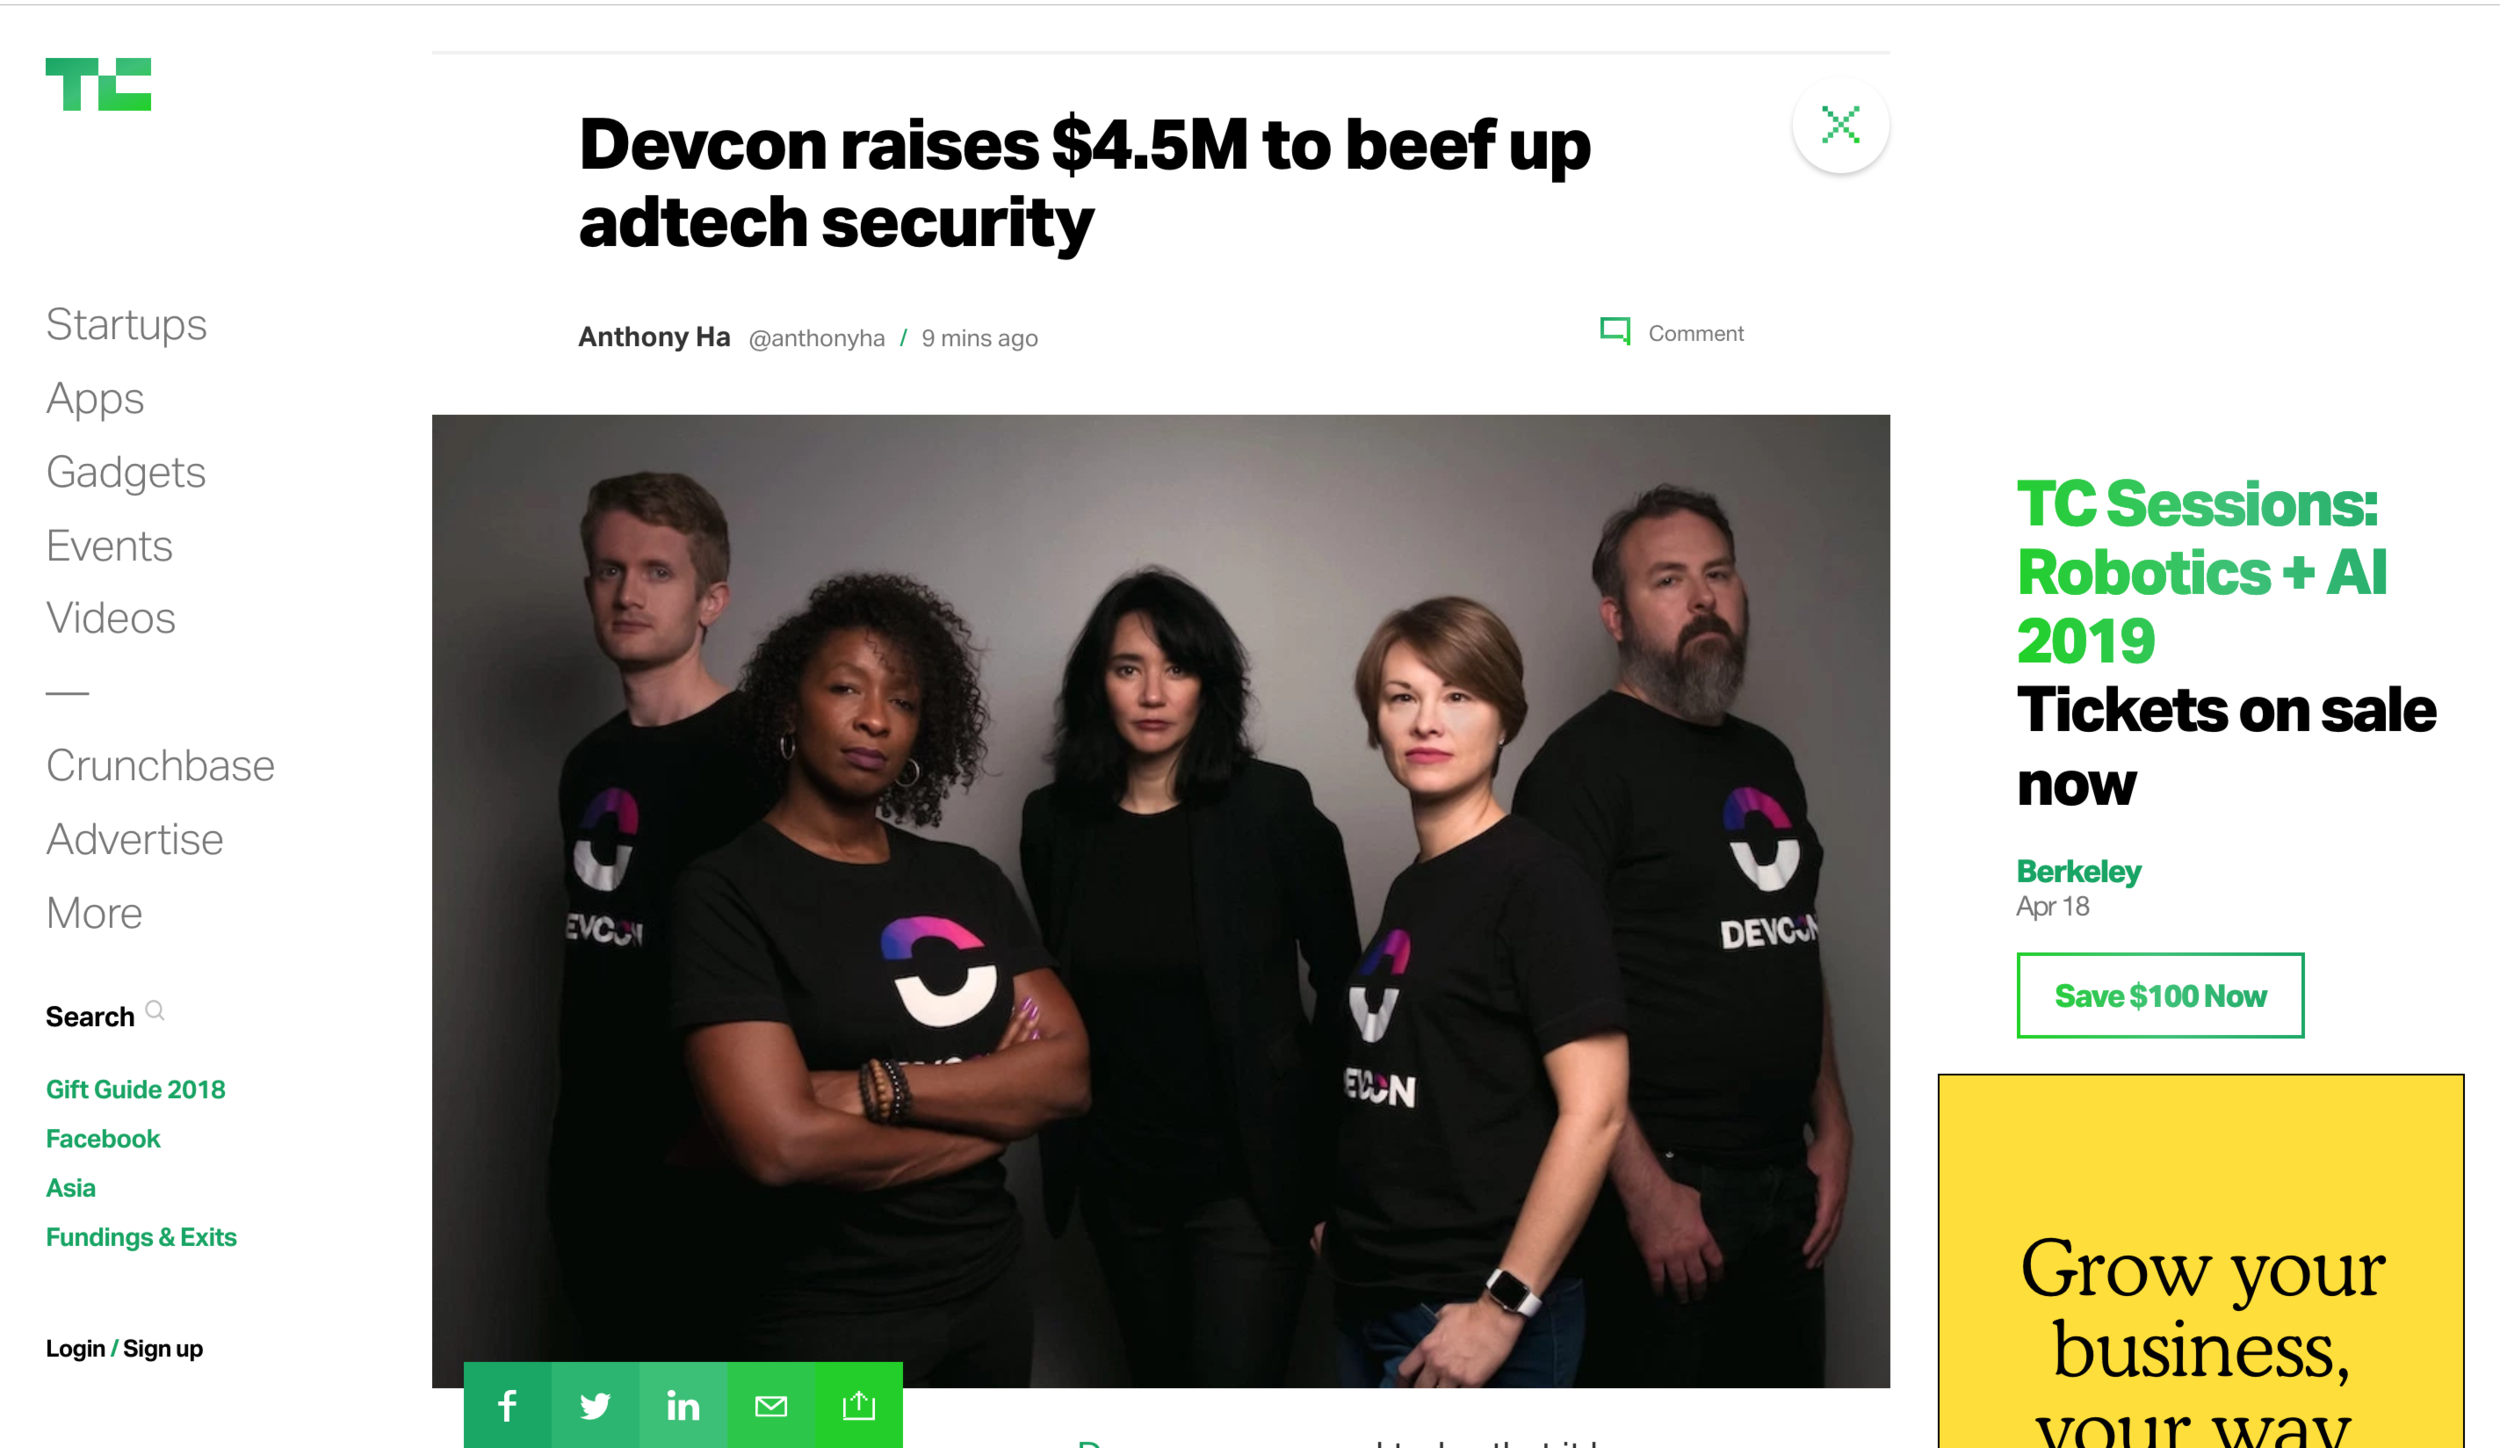 DEVCON raises $4.5M to stop cyber fraud